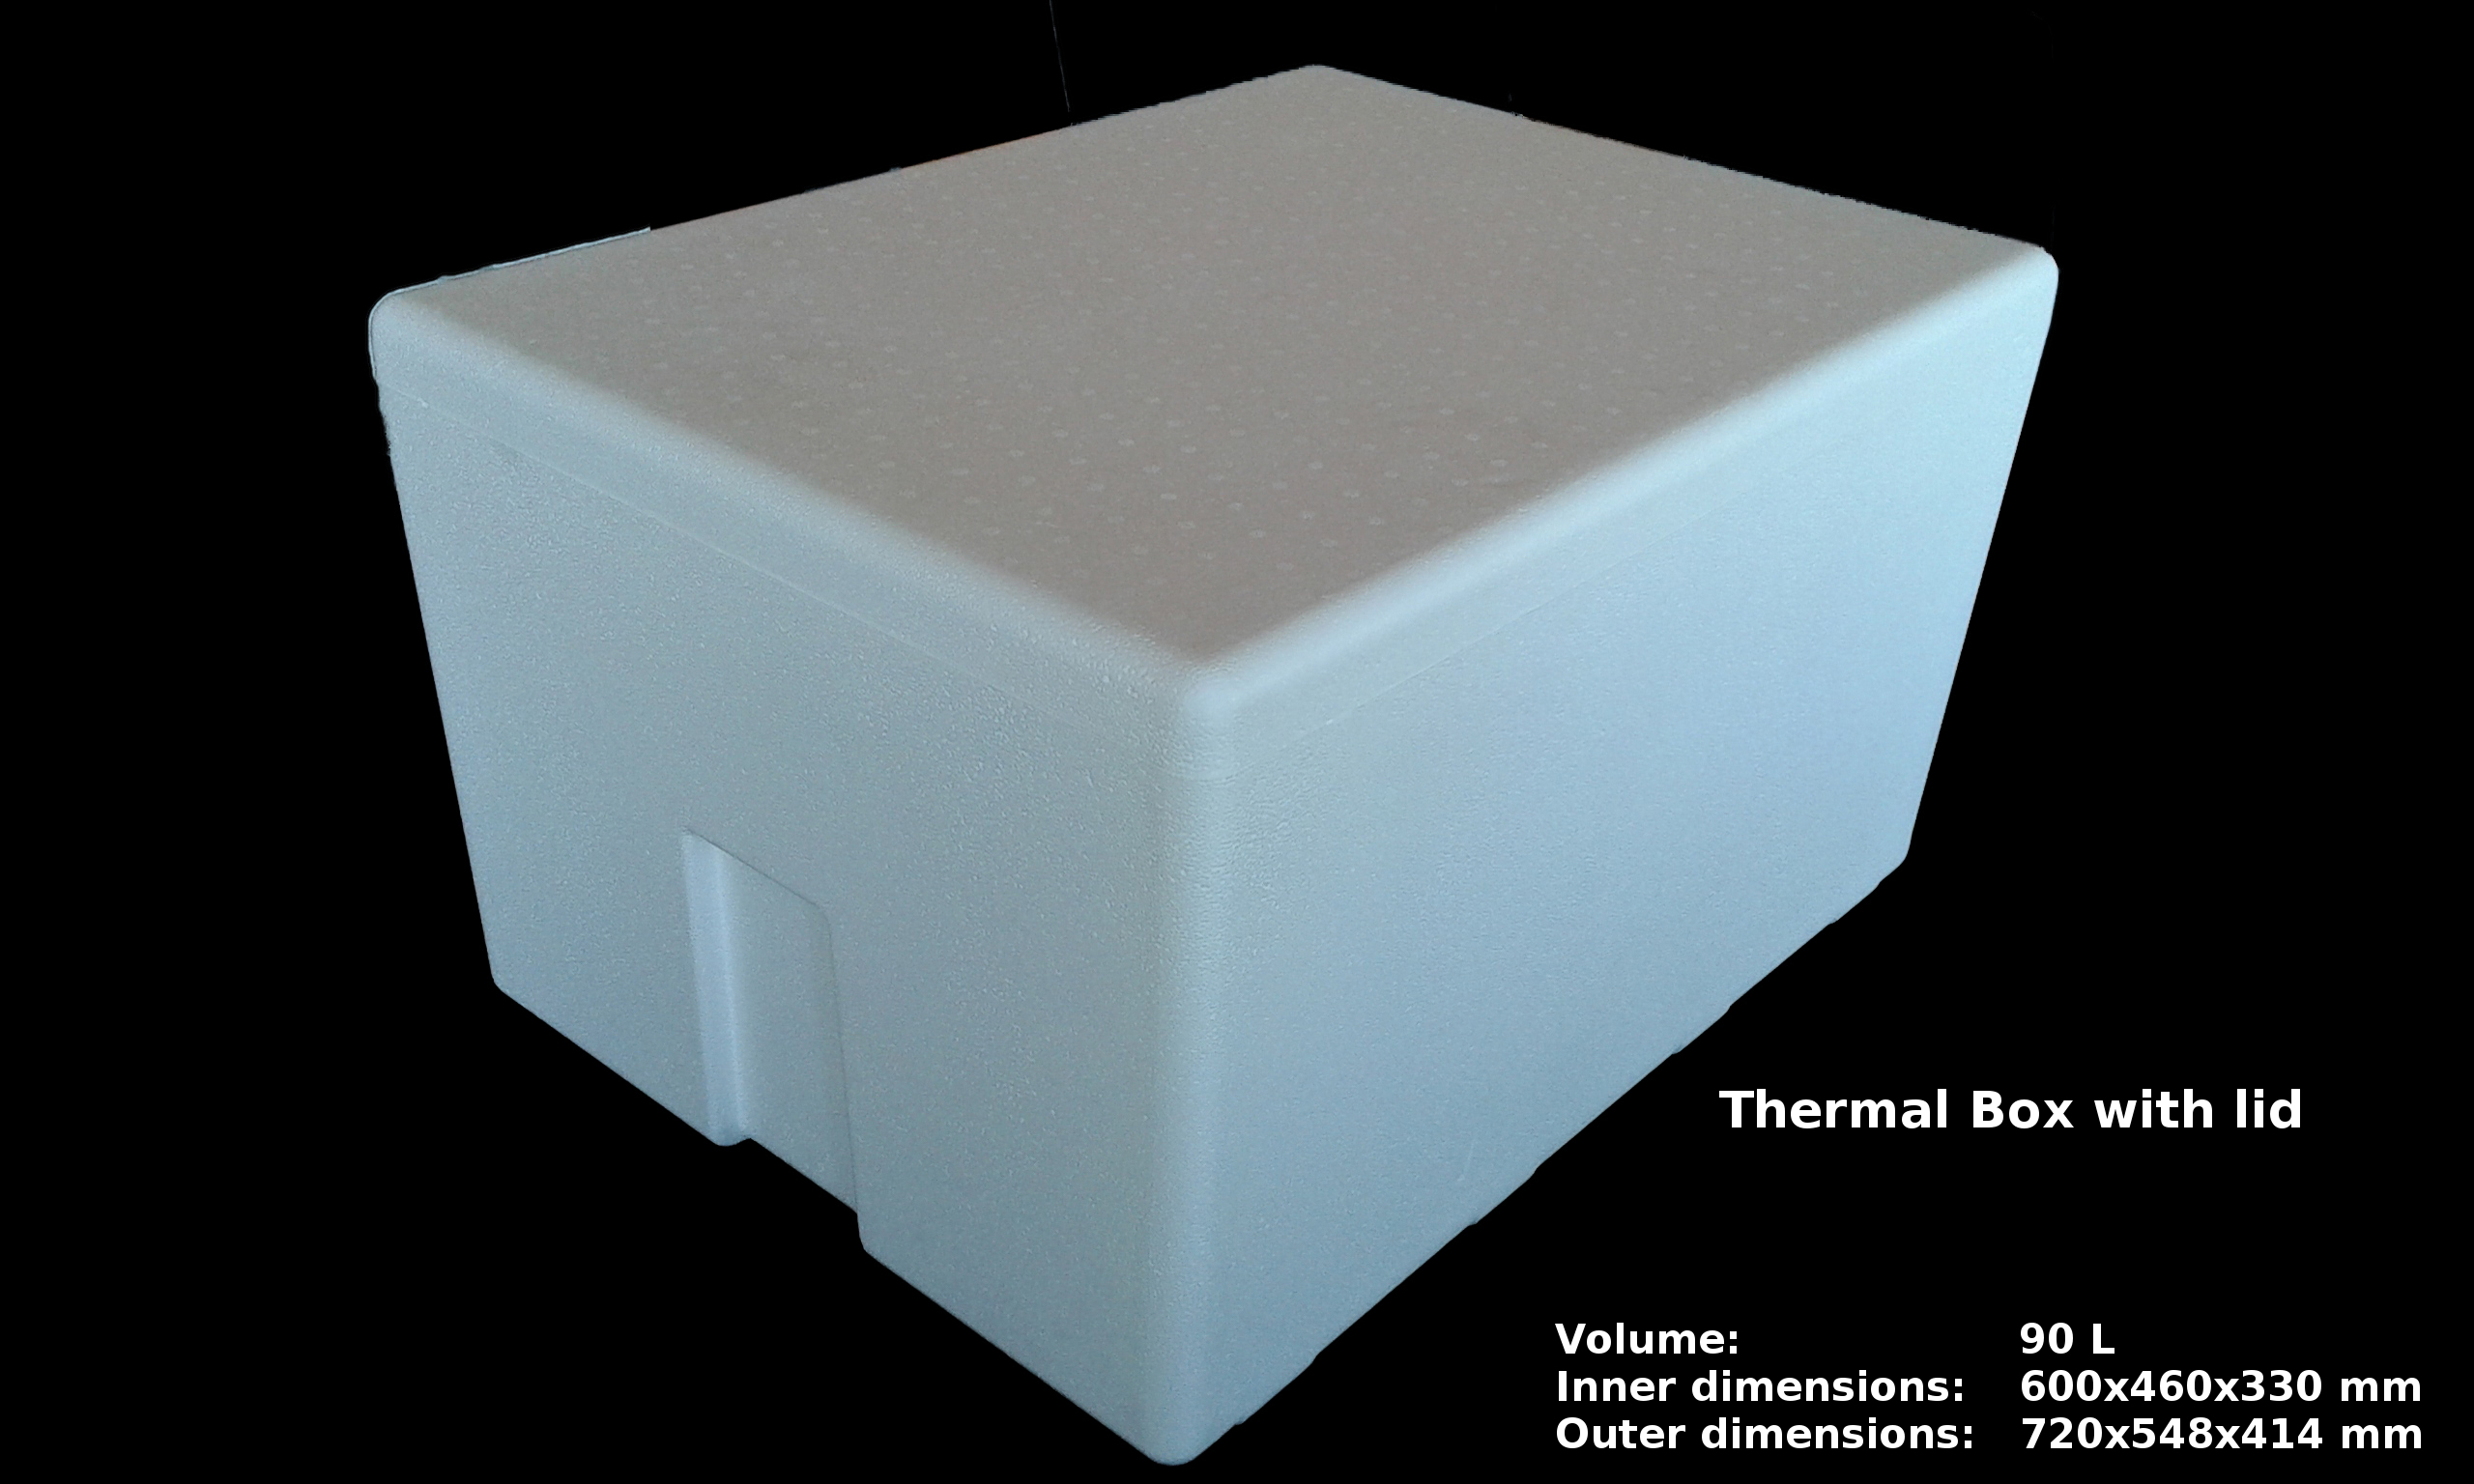 Expandable Polystyrene - Products - Thermal Box